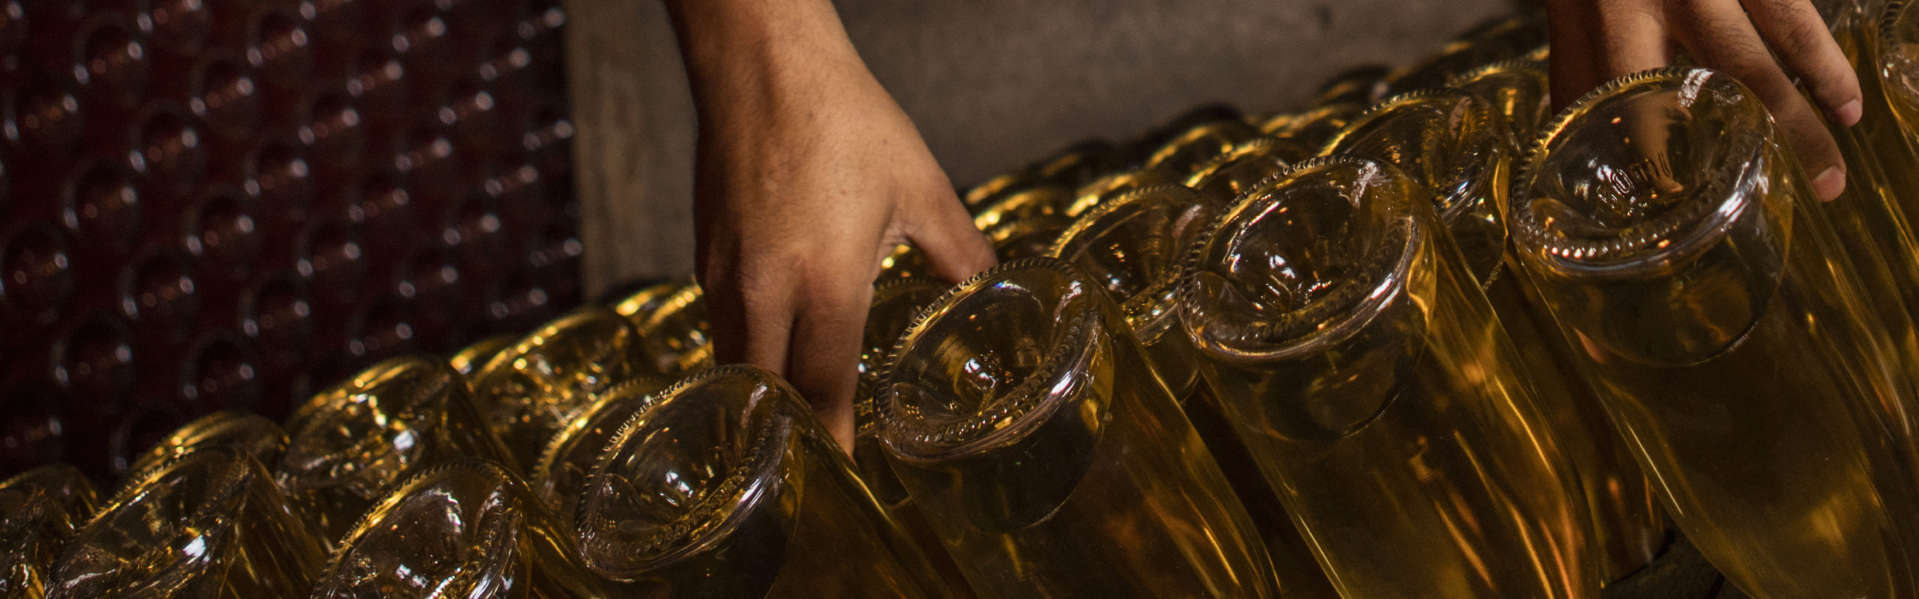 Cellar worker's hands riddling bottles in the wine caves